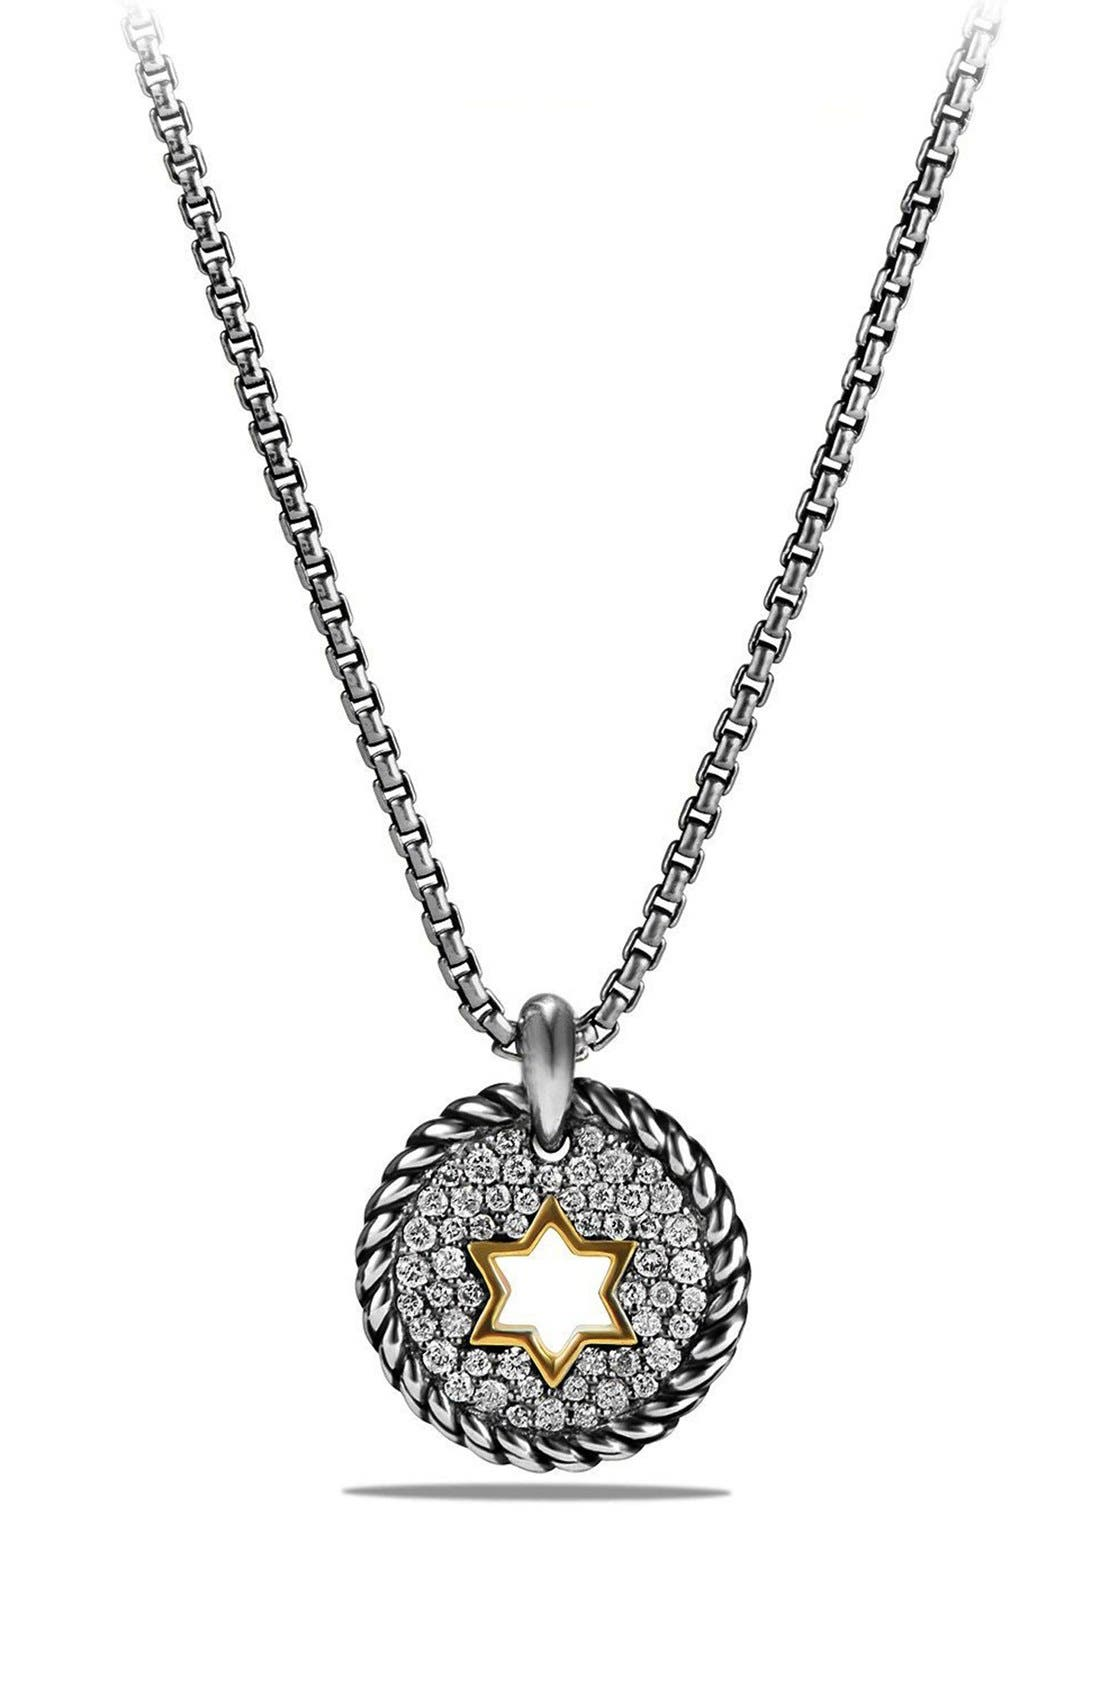 David Yurman 'Pettie Pavé' Star of David Pendant Necklace